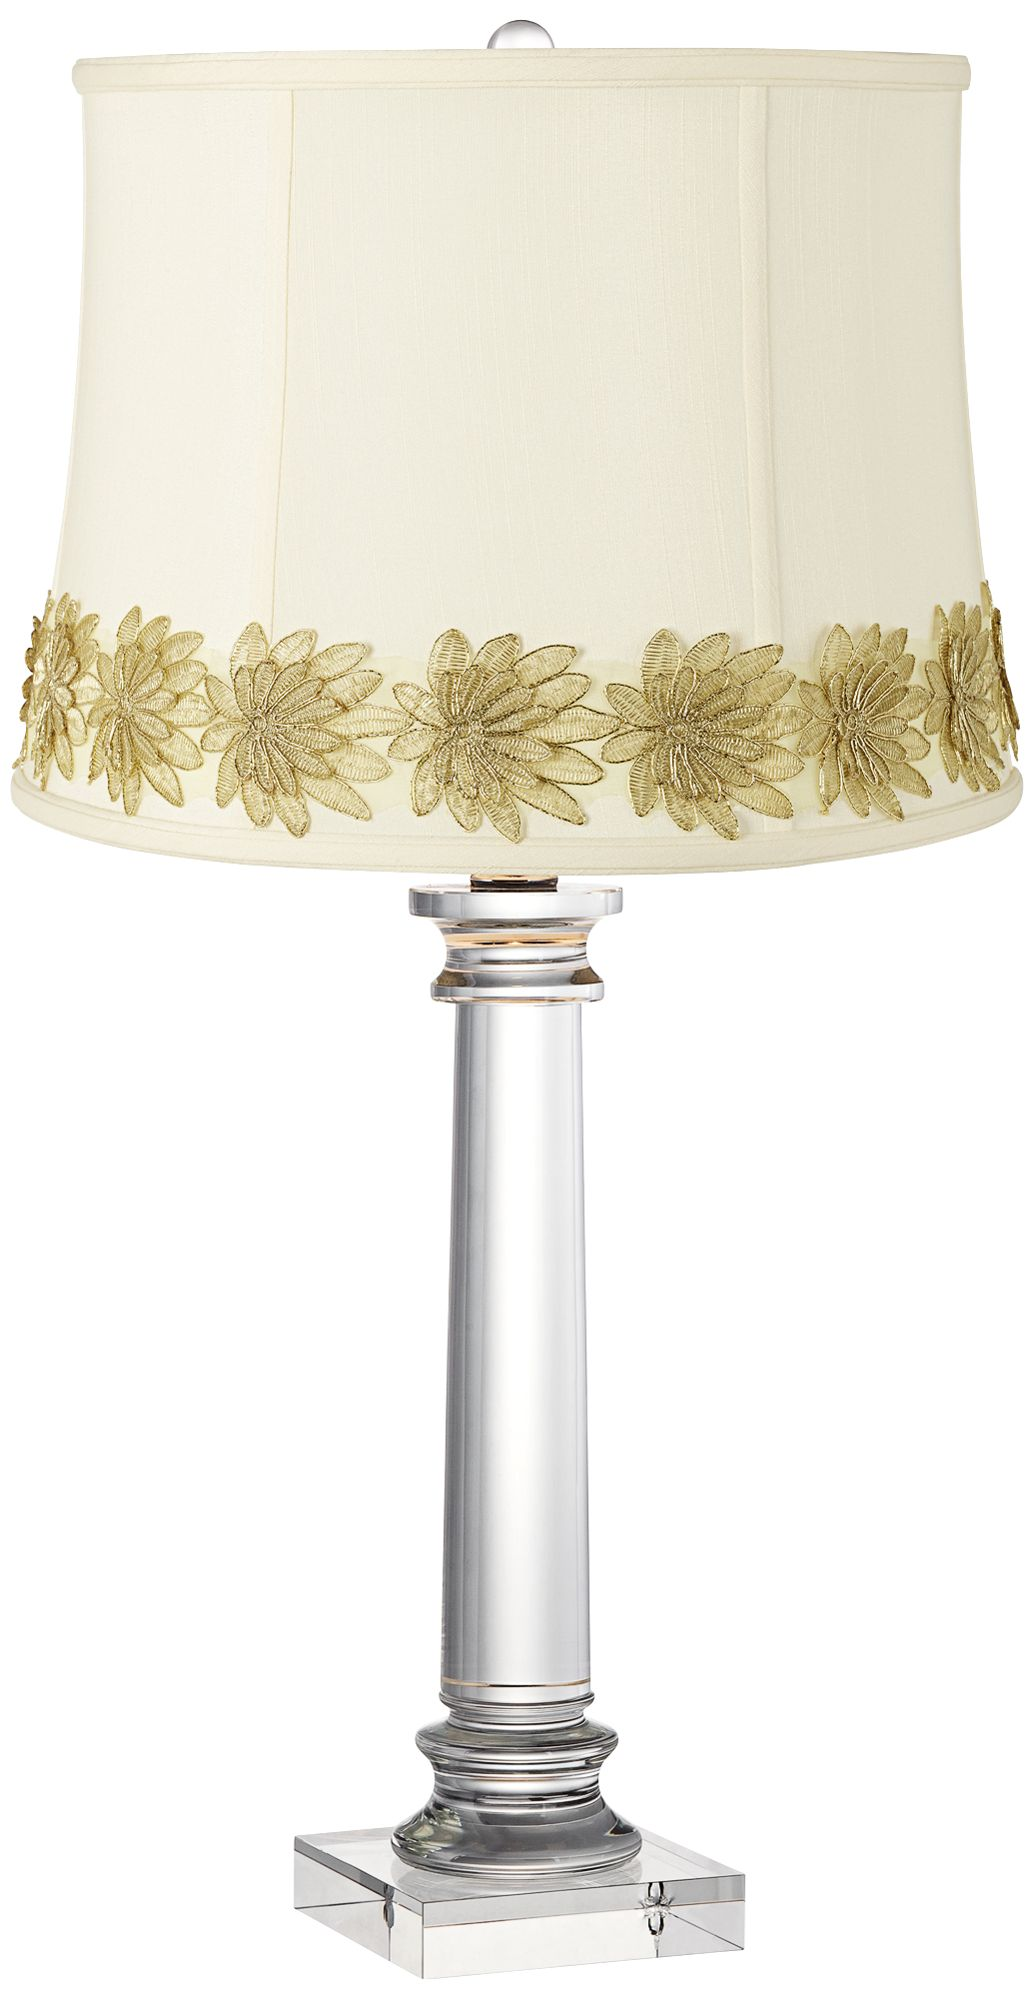 Great Classic Creme Crystal Column Table Lamp With Flower